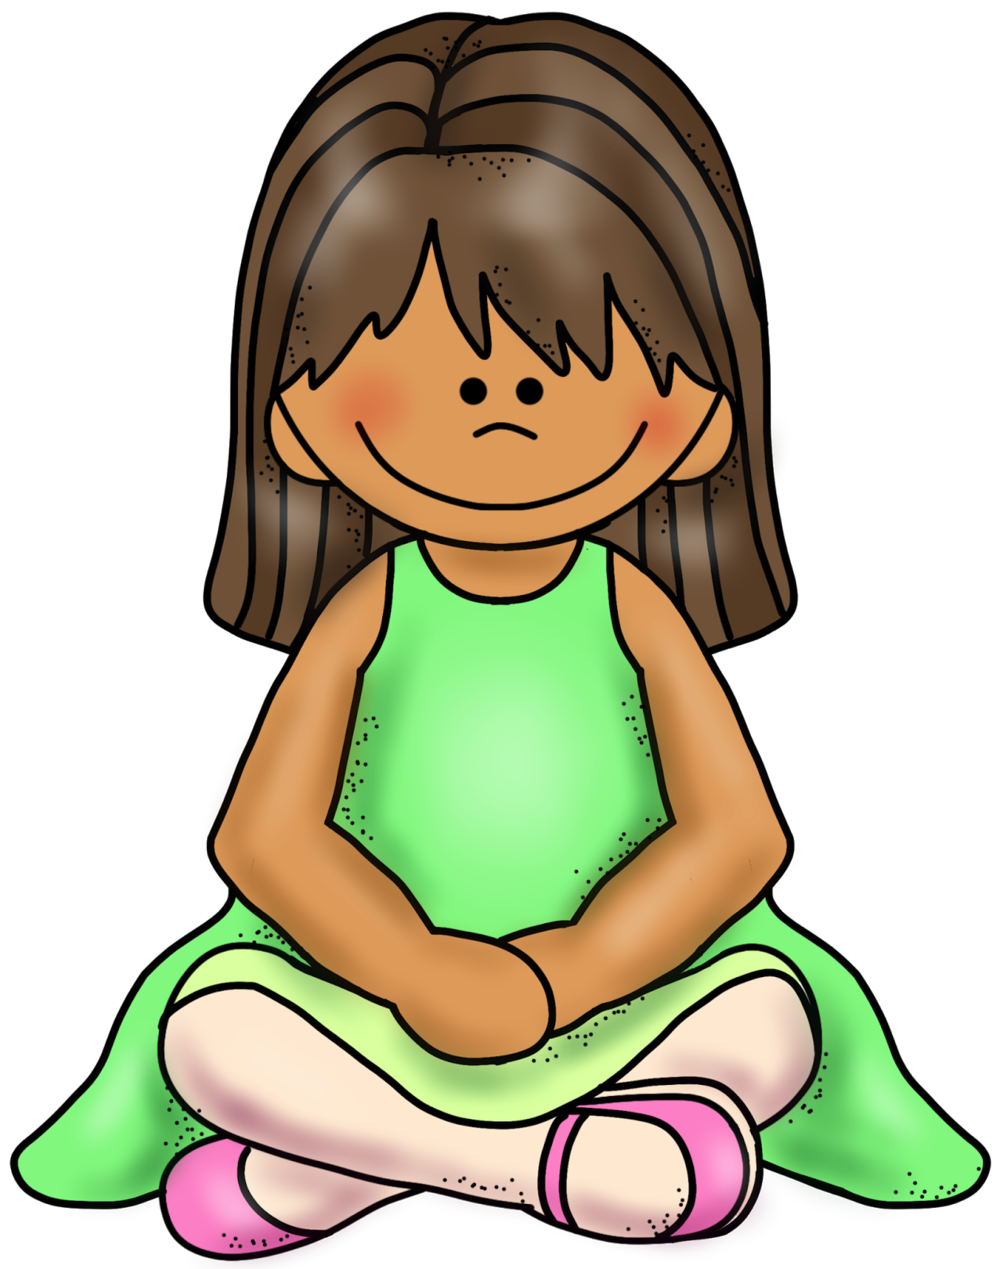 Clipart child sitting criss cross image freeuse library What's up with W-Sitting? — Buckle My Shoe image freeuse library